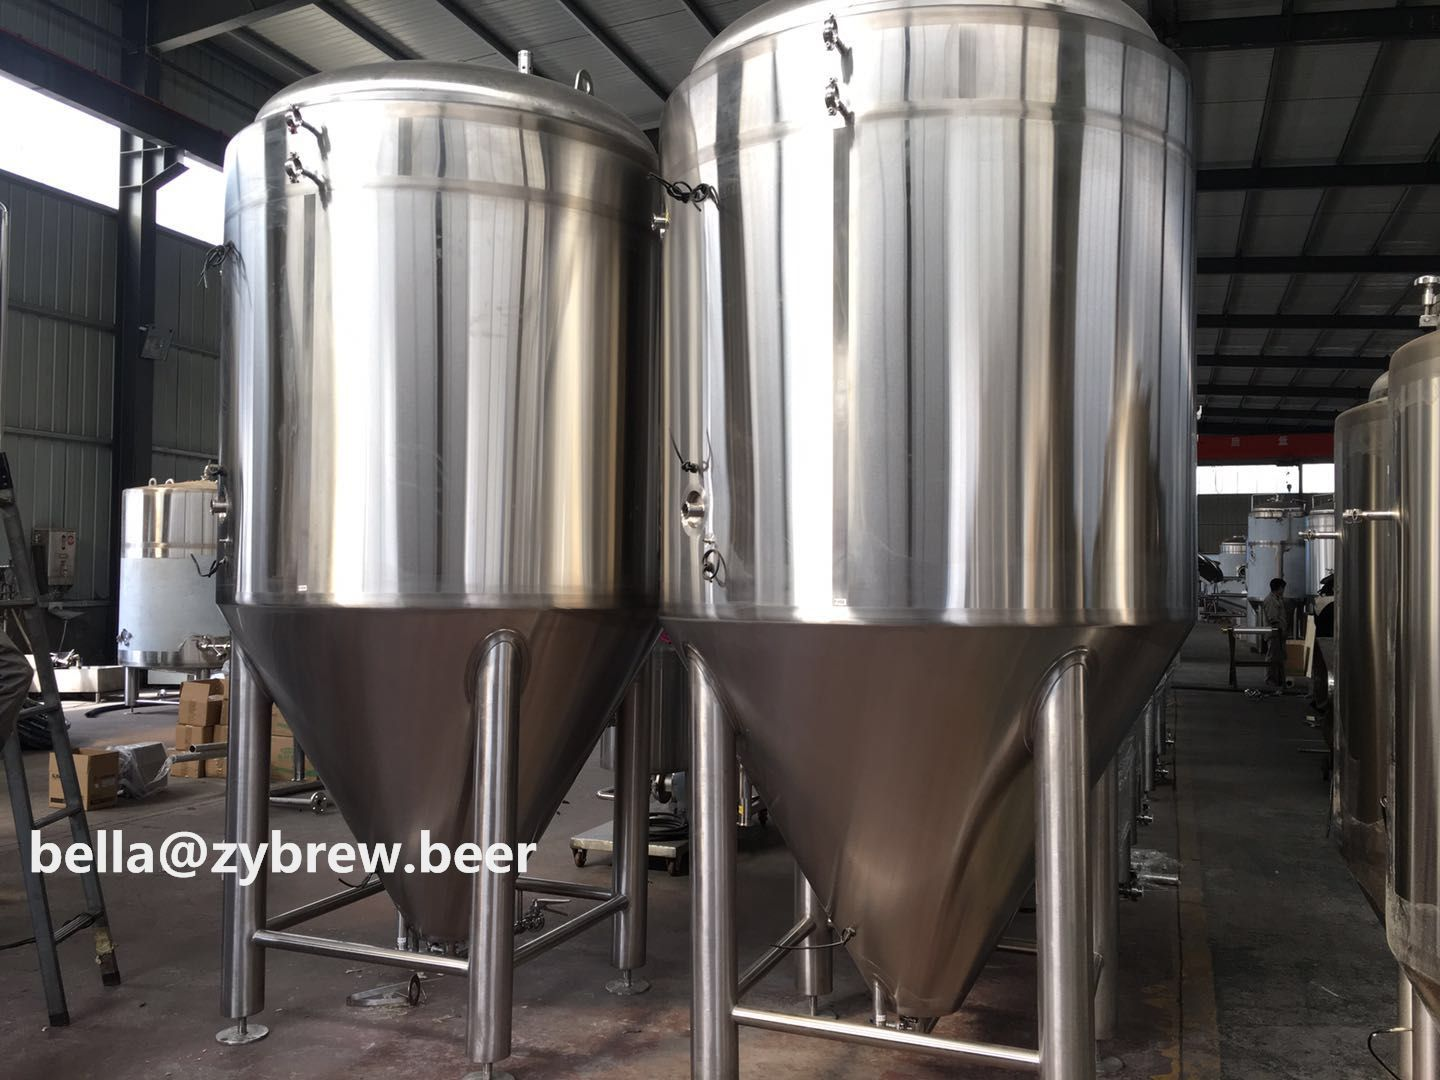 The 10bbl Brewery System For Brasserie Messorem Bracitorium Inc In Canada Detailed Configuration As Followin Brewery Brewing Equipment Beer Brewing Equipment